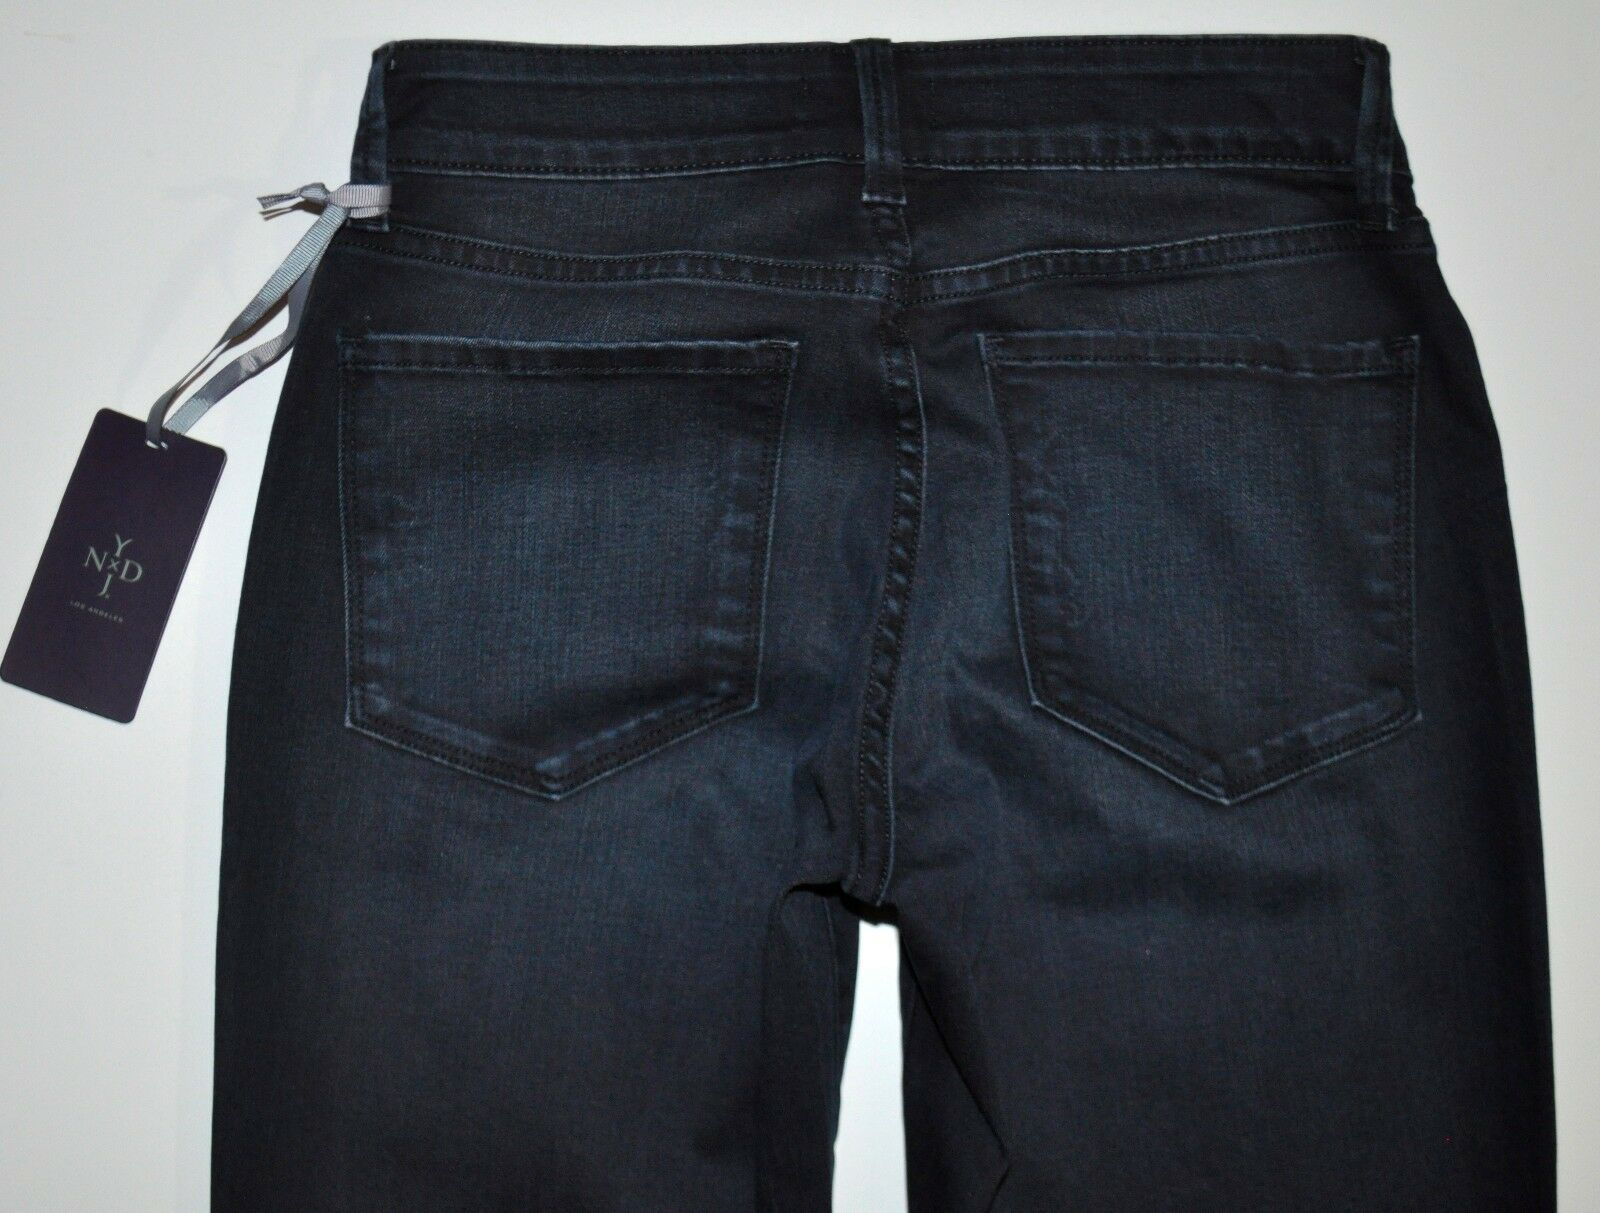 NEW NYDJ Not Your Daughter's Jeans Dark bluee Barbara Bootcut Sz 6 X 32.5 SAMPLE